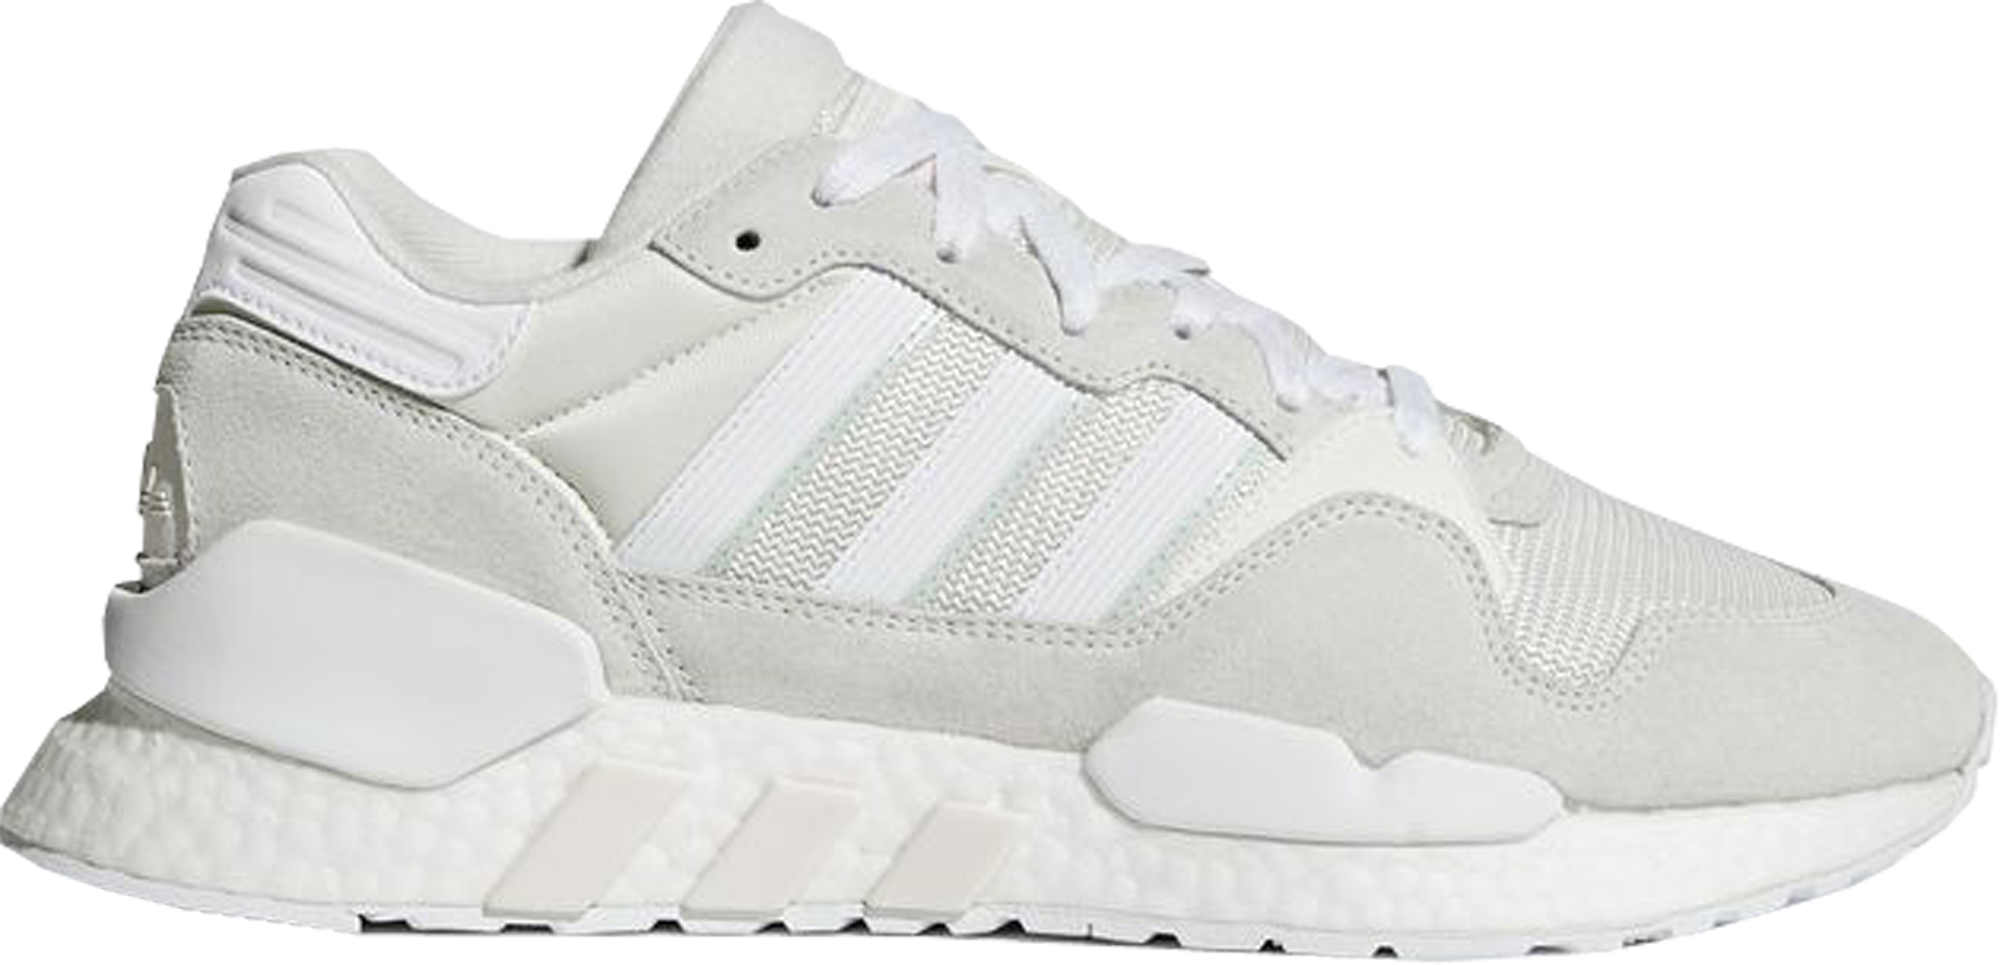 adidas ZX 930 x EQT Never Made Pack Triple White